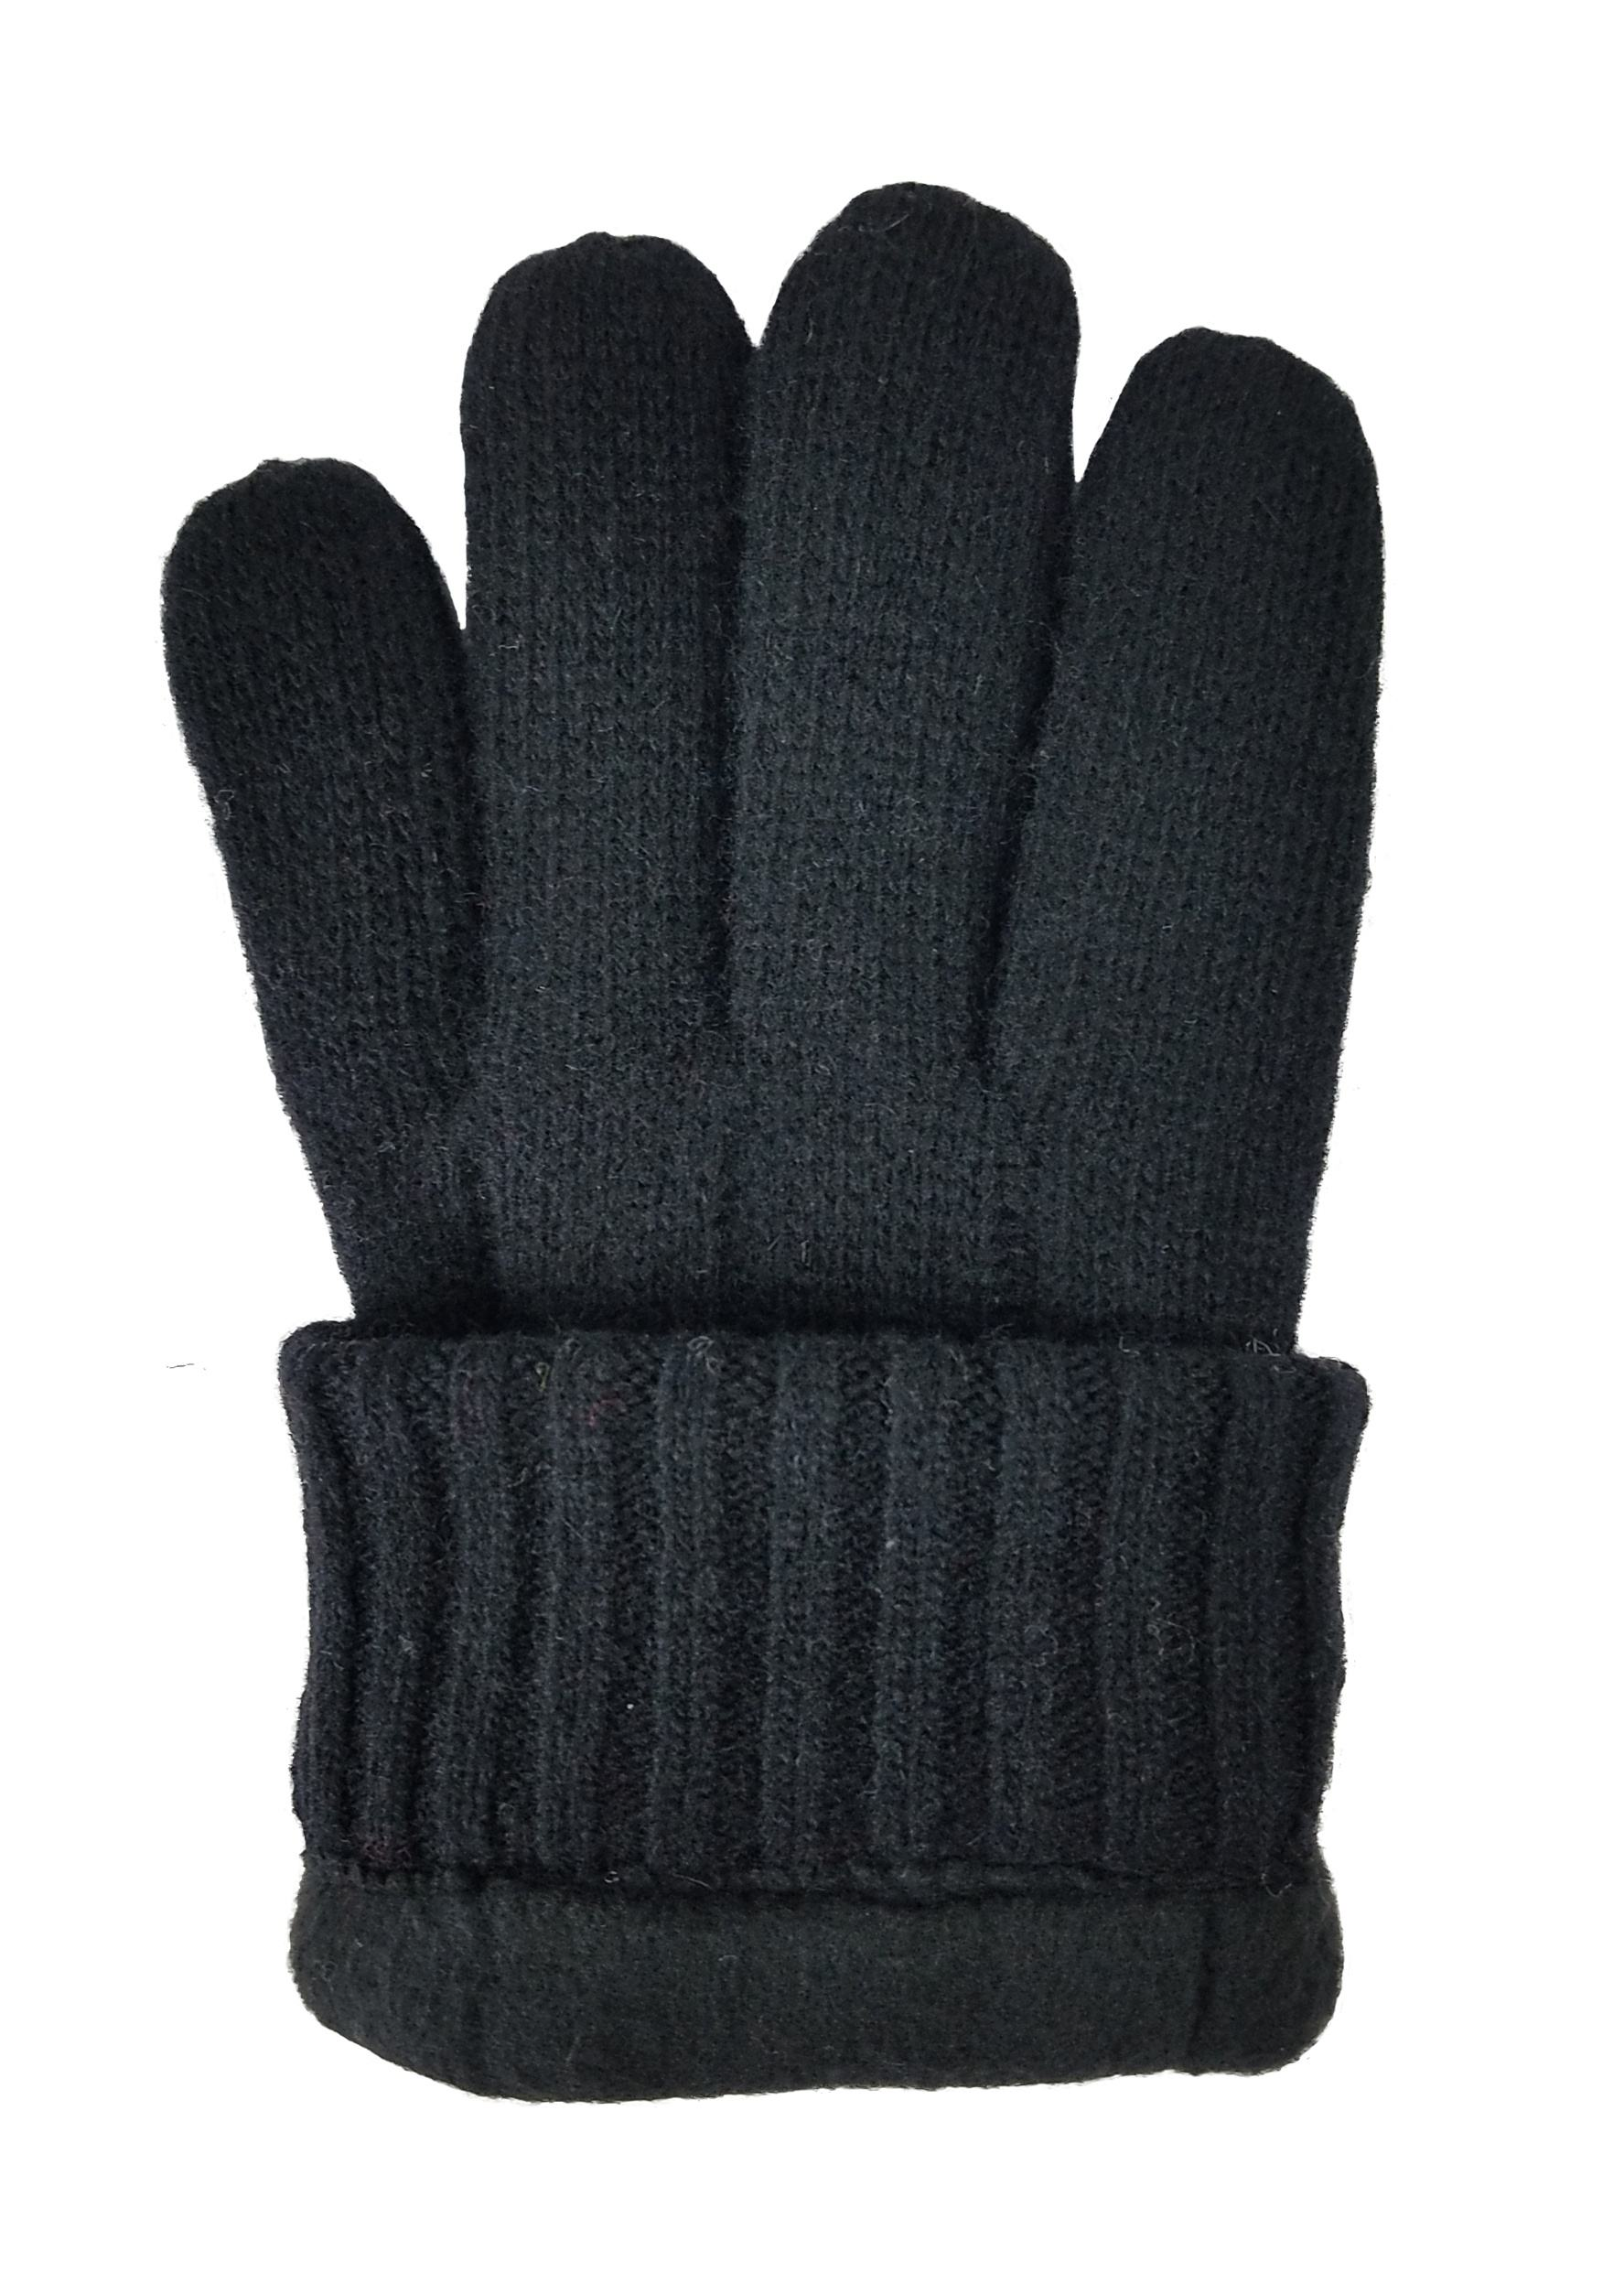 Wool Glove Bruceriver Men's Pure Wool Knitted Gloves With Thinsulate Lining With Rib Design